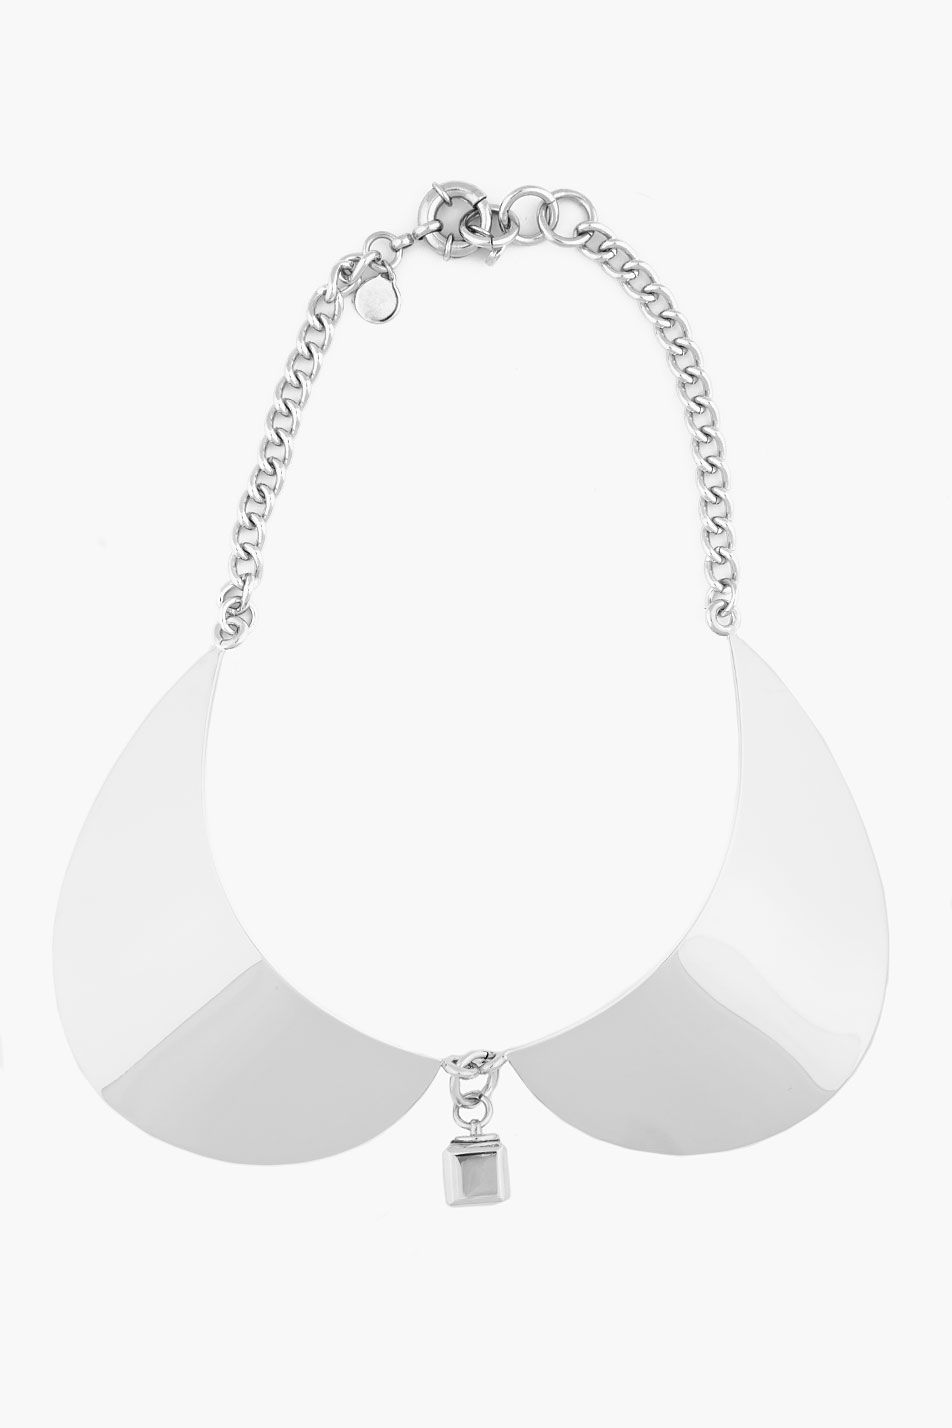 MARC BY MARC JACOBS //  SILVER PETER PAN COLLAR NECKLACE